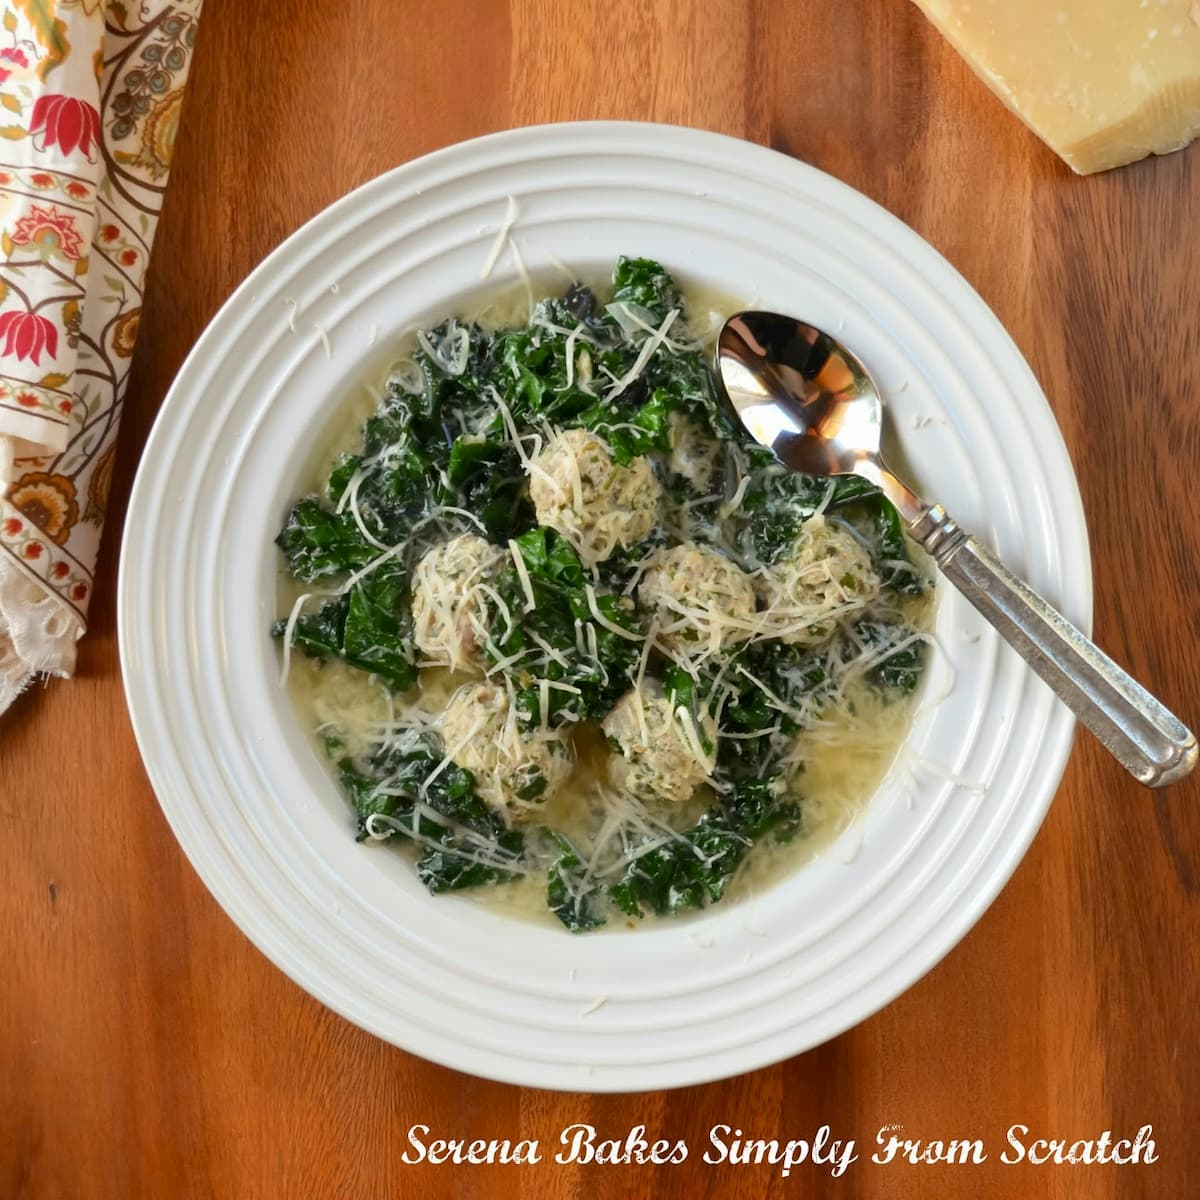 A bowl of Italian Wedding Soup with Meatballs, kale and star pasta with fresh parmesan cheese over the top.